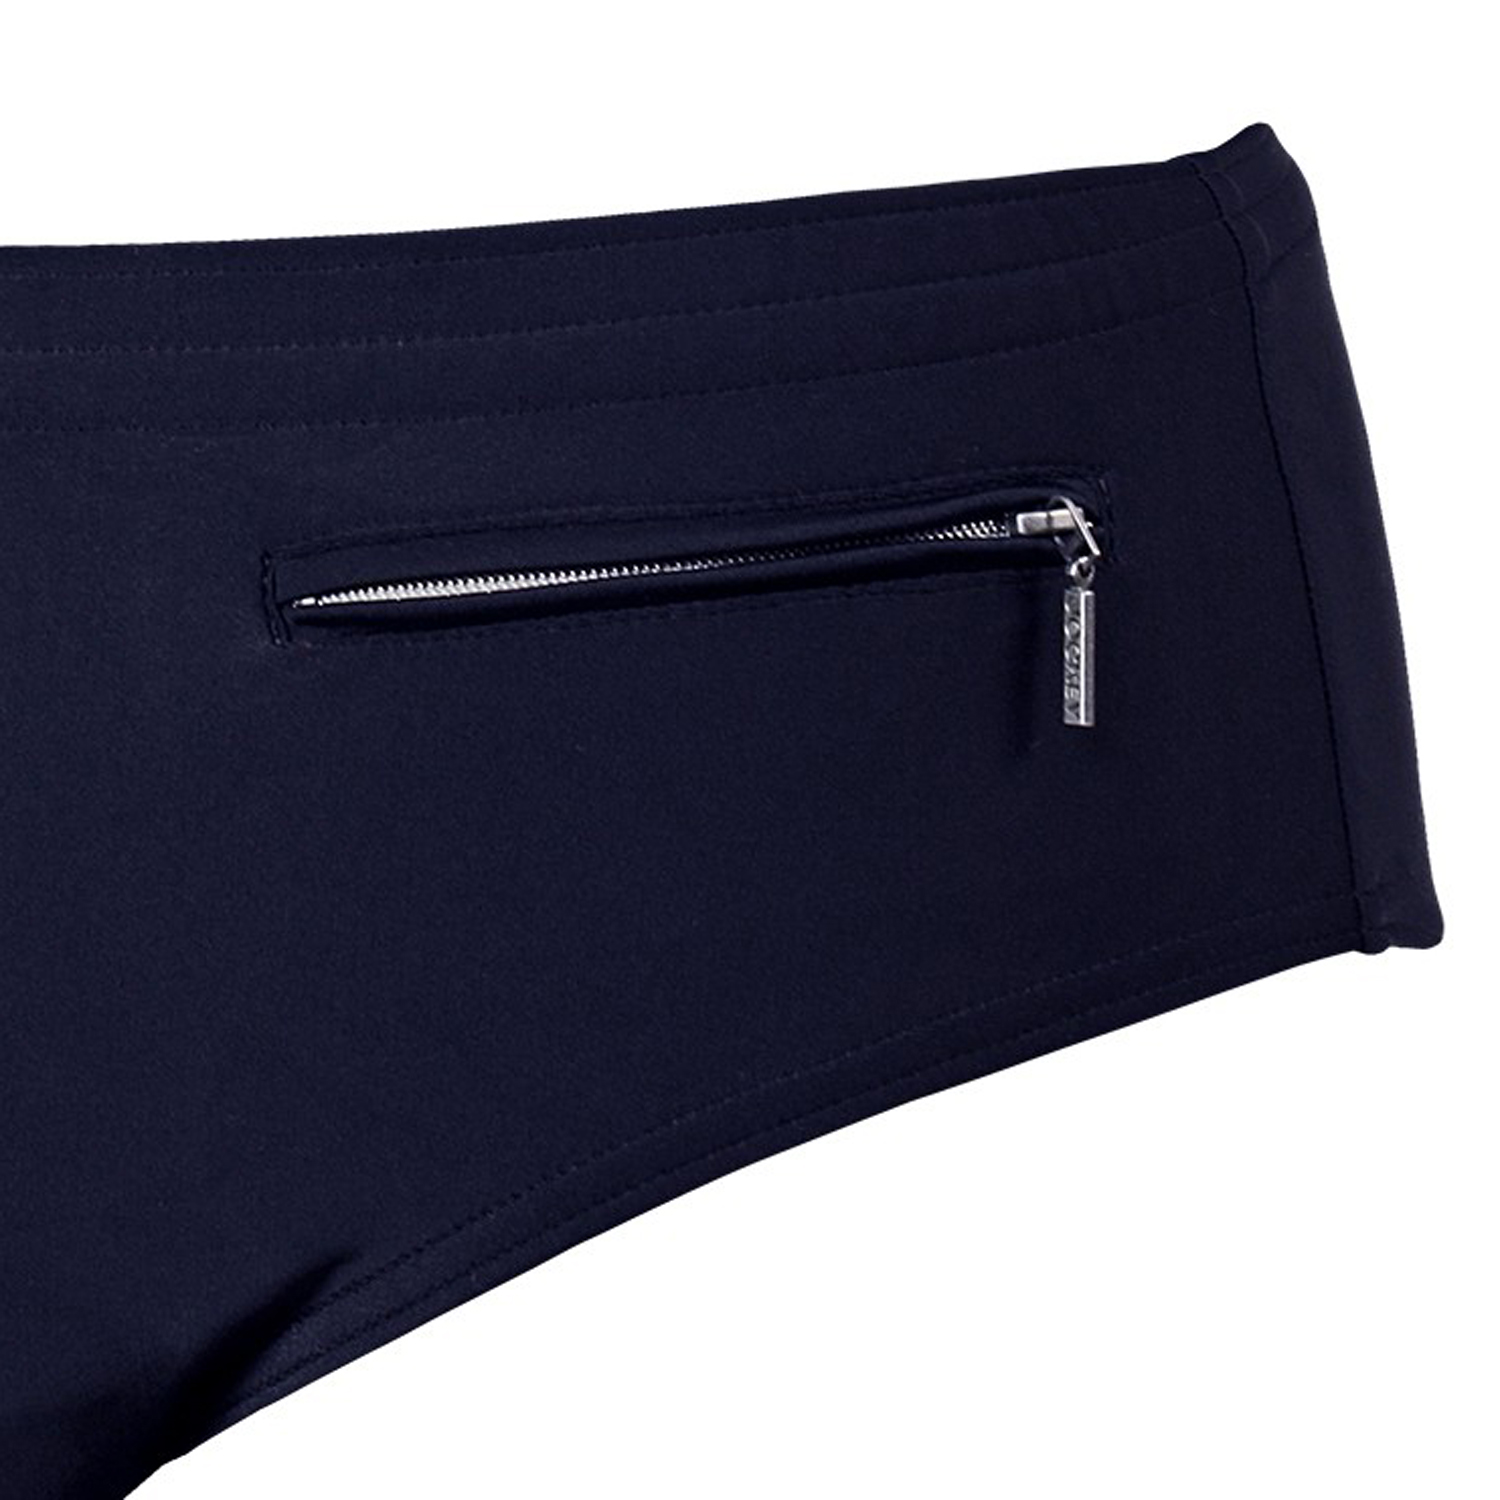 Detail Image to Swimming trunks in blue from Jockey in oversizes till 6XL